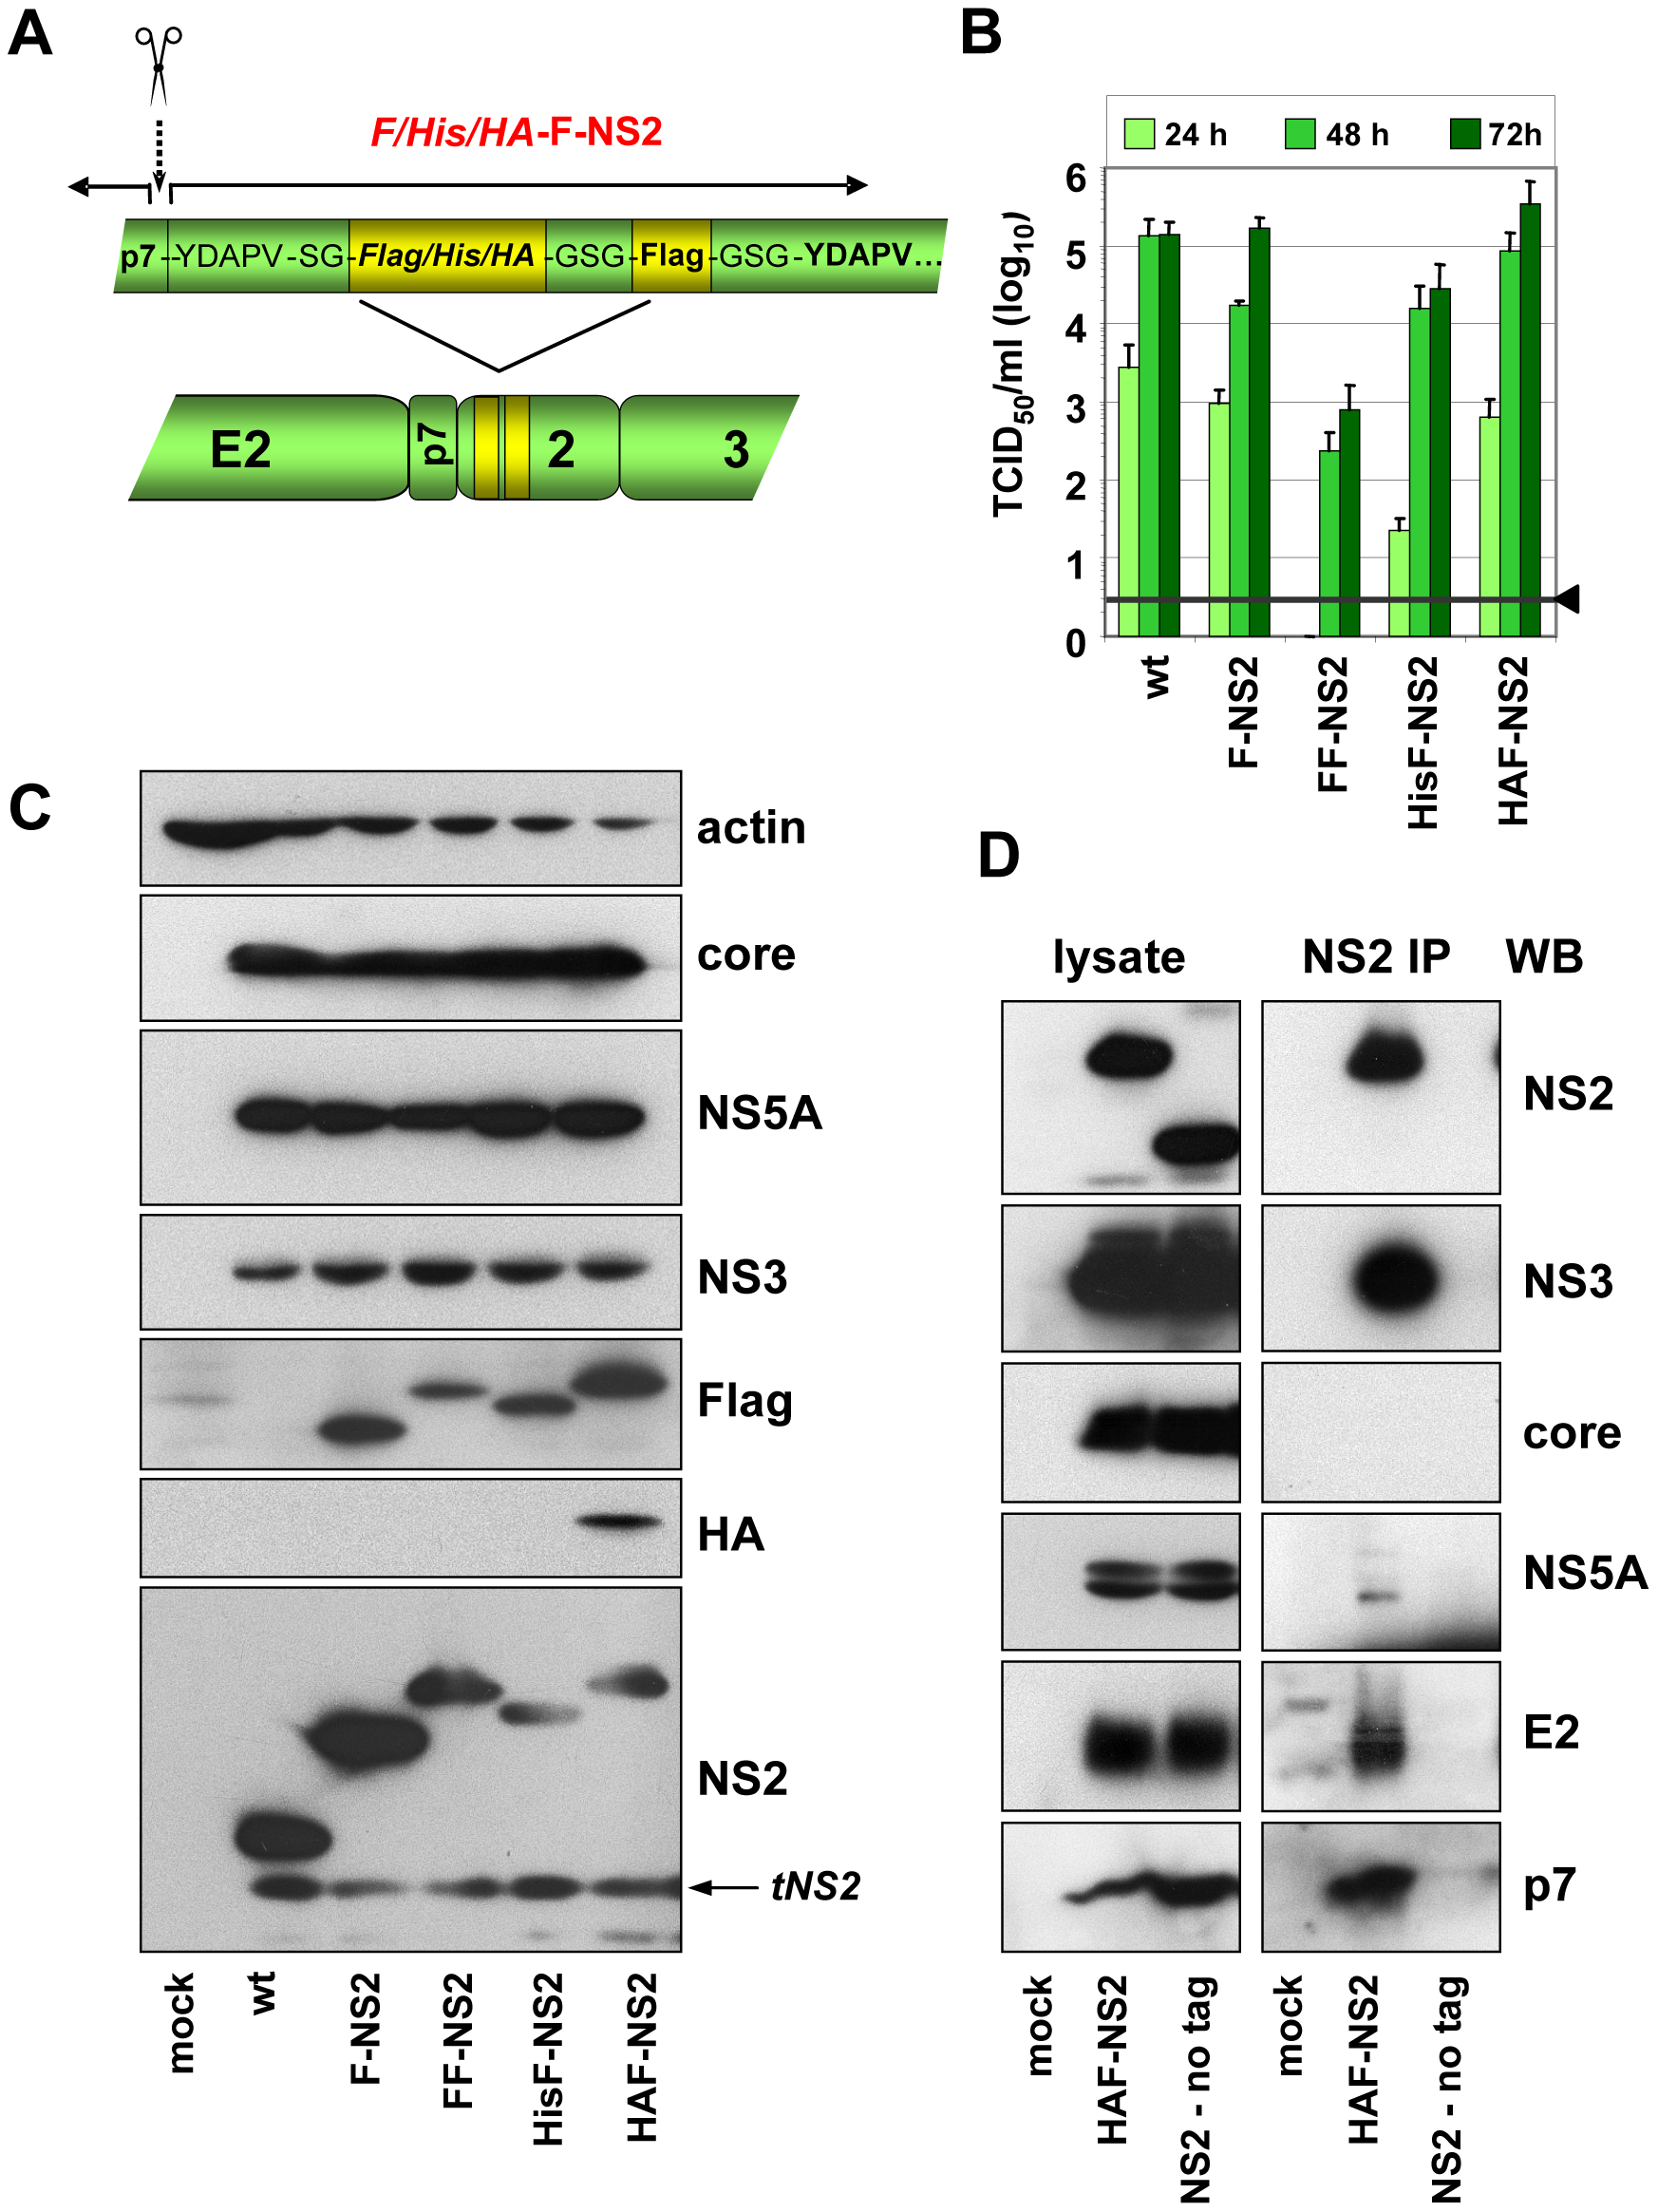 Construction and functional characterization of JFH1 genomes encoding an N-terminally tagged NS2 protein.